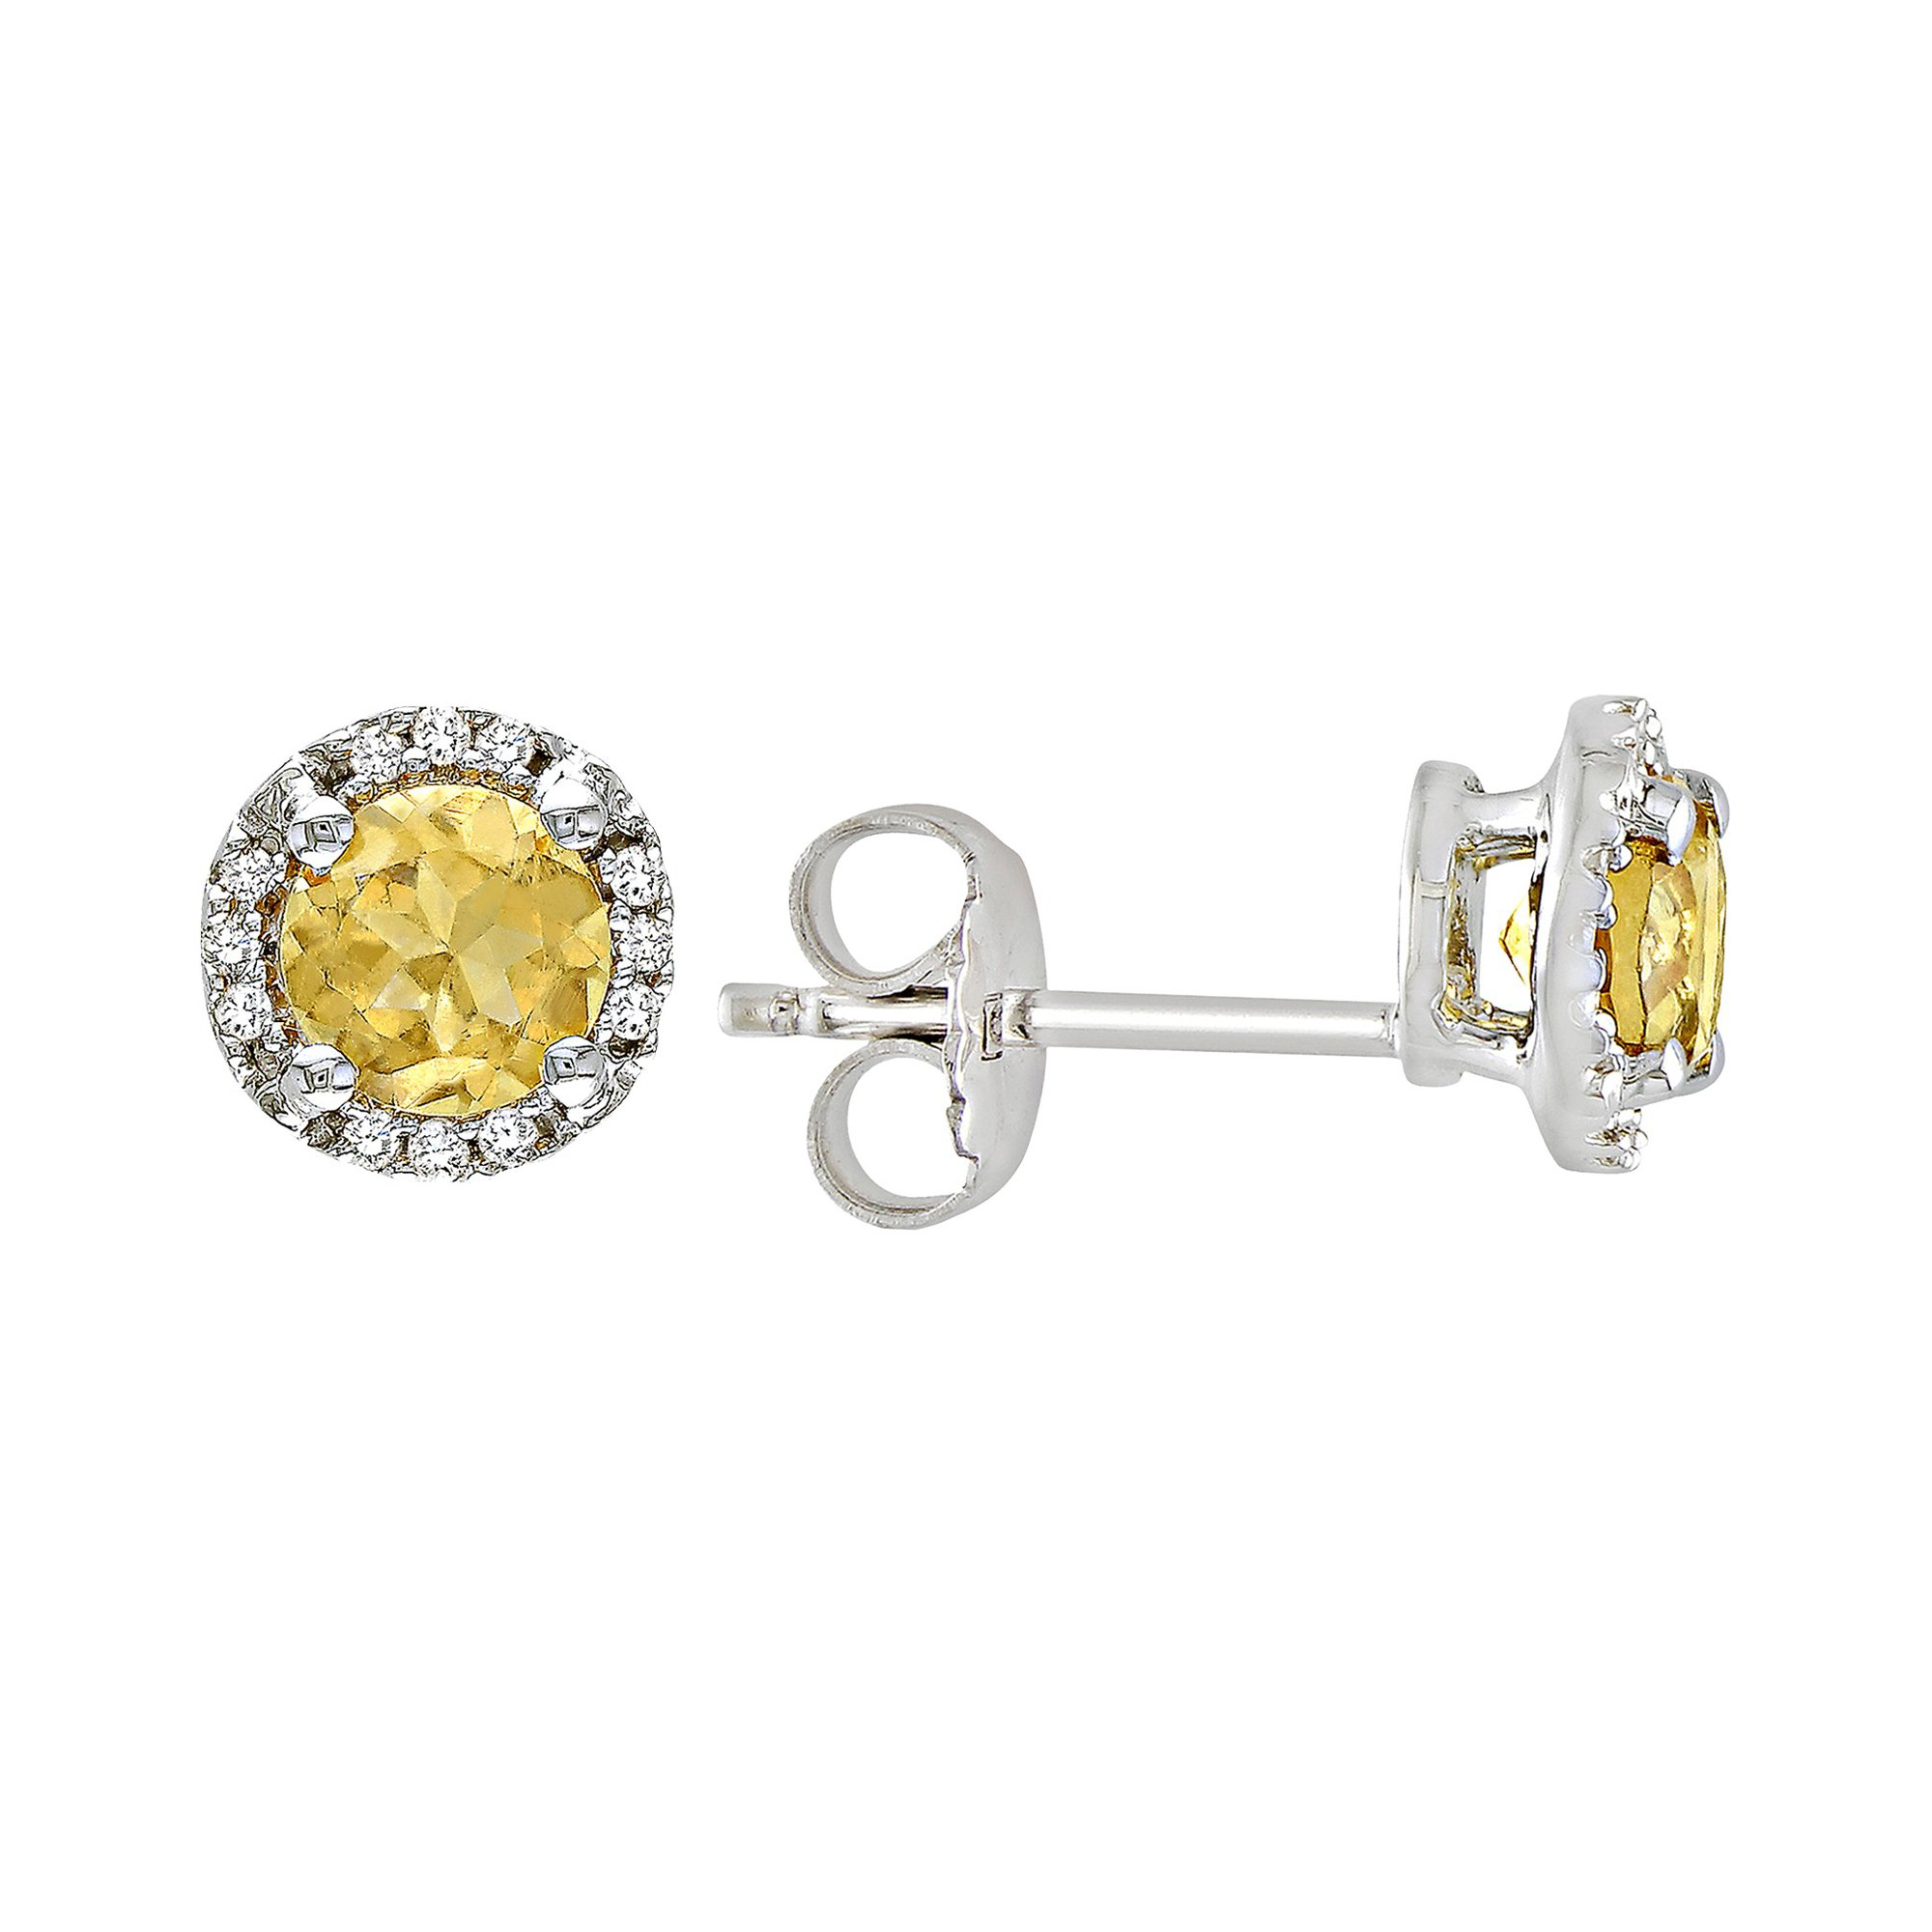 Citrine and Diamond Earrings in Sterling Silver - Yellow, Women's